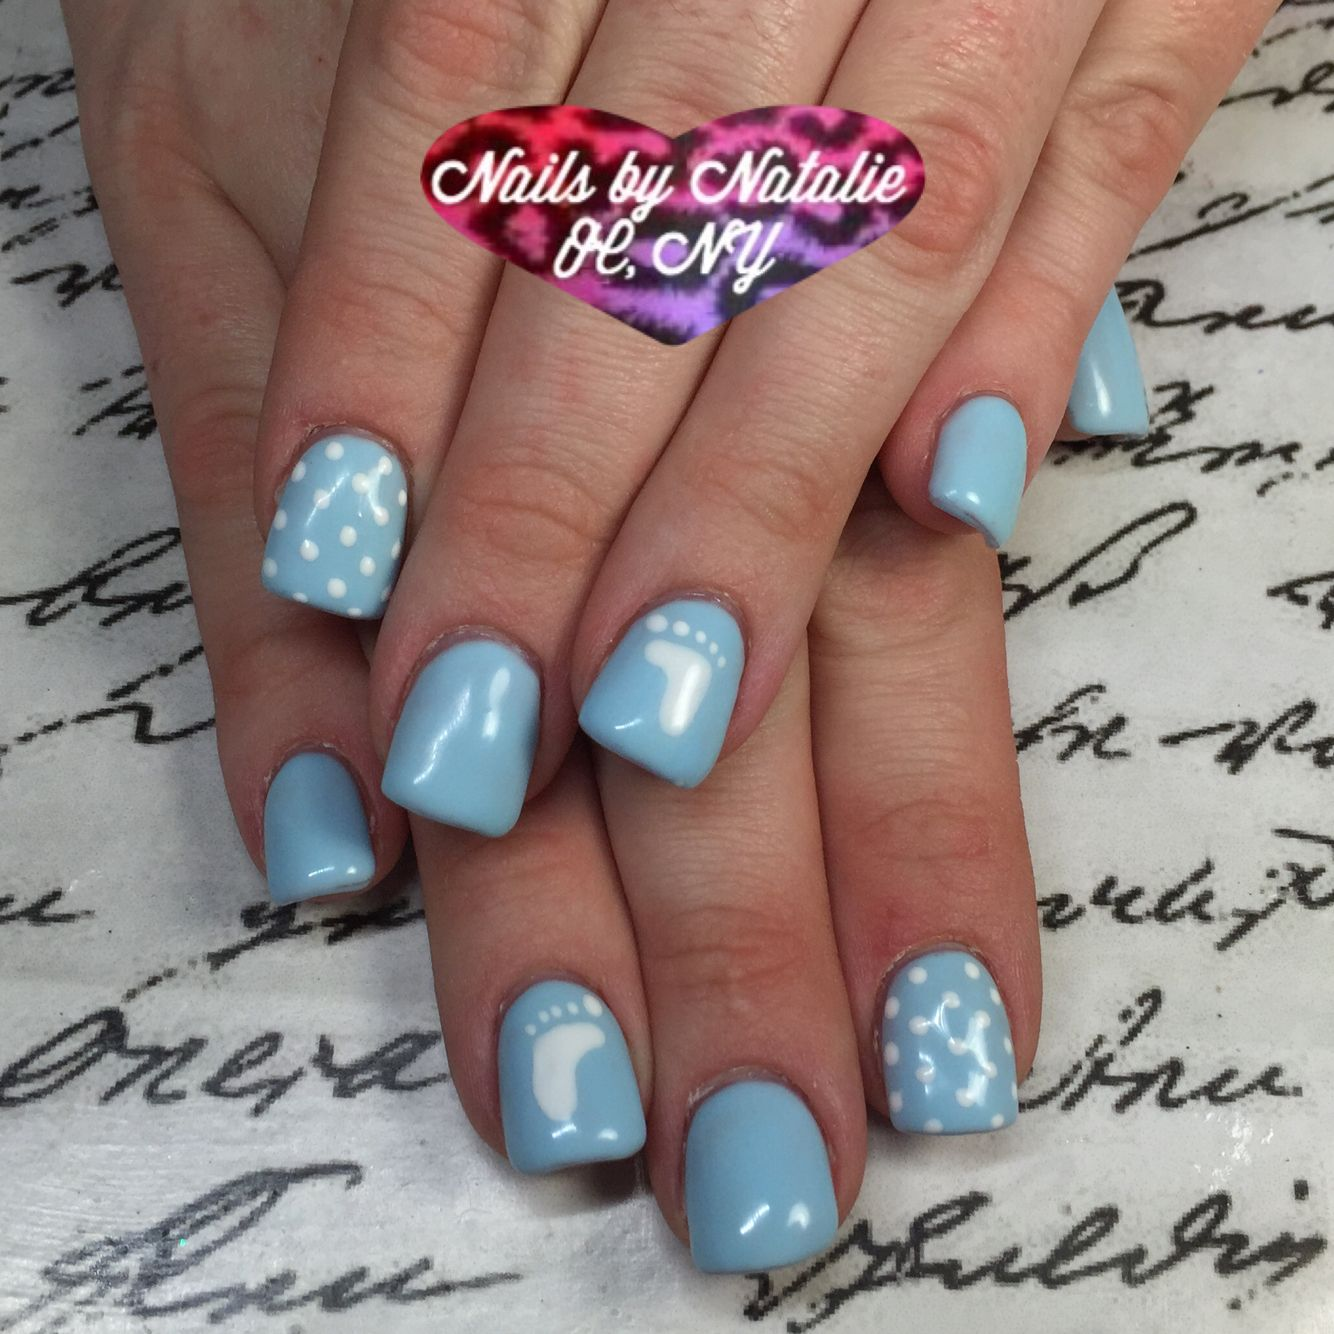 Gel Nail Designs Baby Shower Themed Using Gelish Cnd Brisa Overlay And Hand Painted Dots And Feet Baby Boy Nail Baby Nails Baby Shower Nails Baby Boy Nails